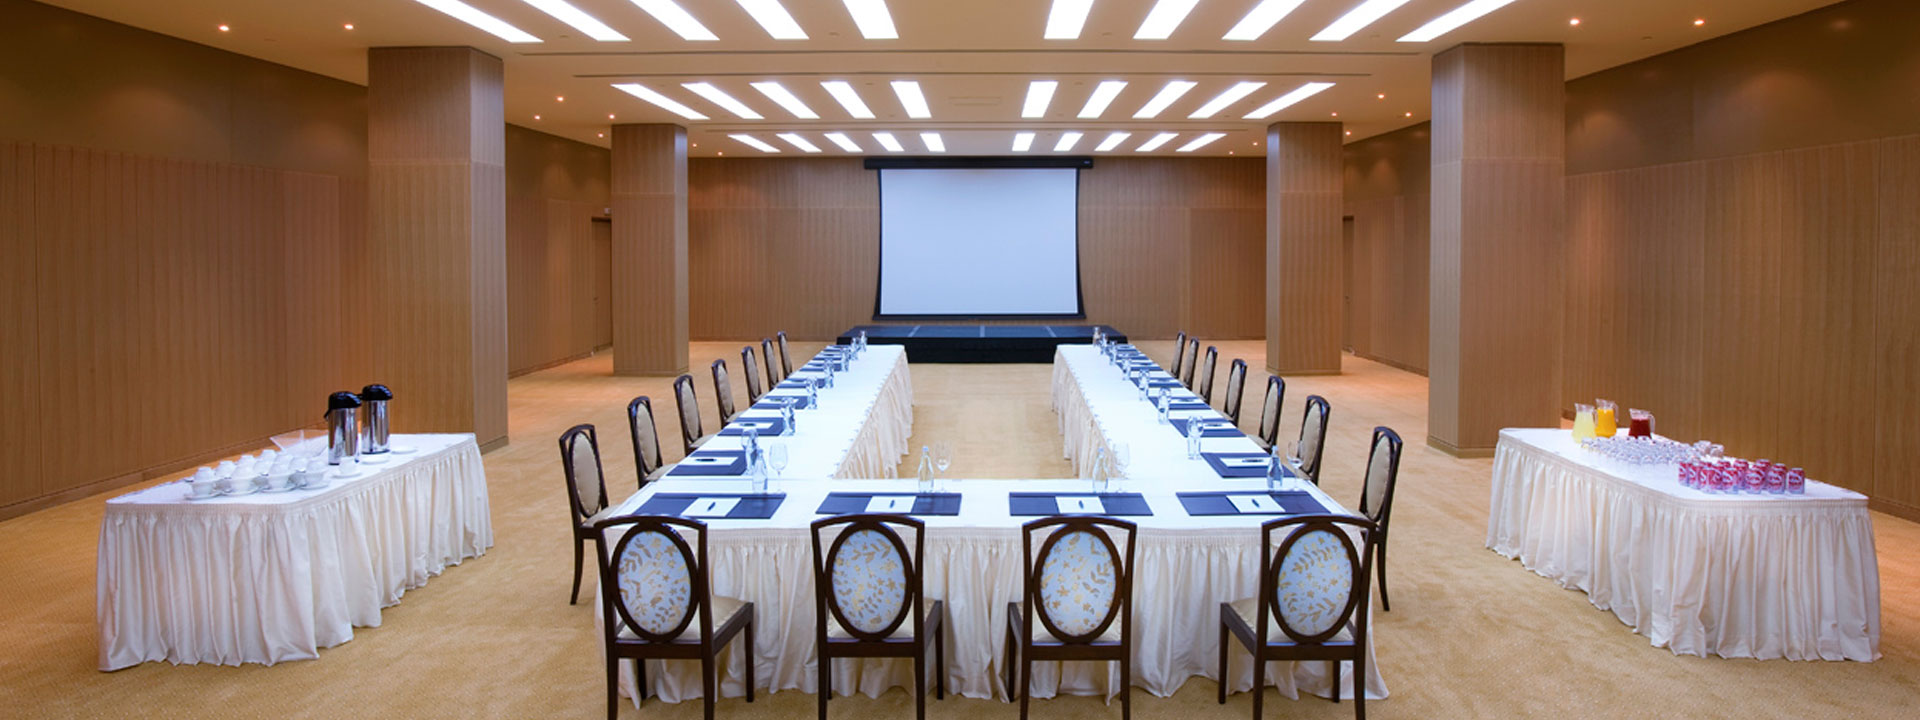 La Cigale Hotel - Meeting Rooms